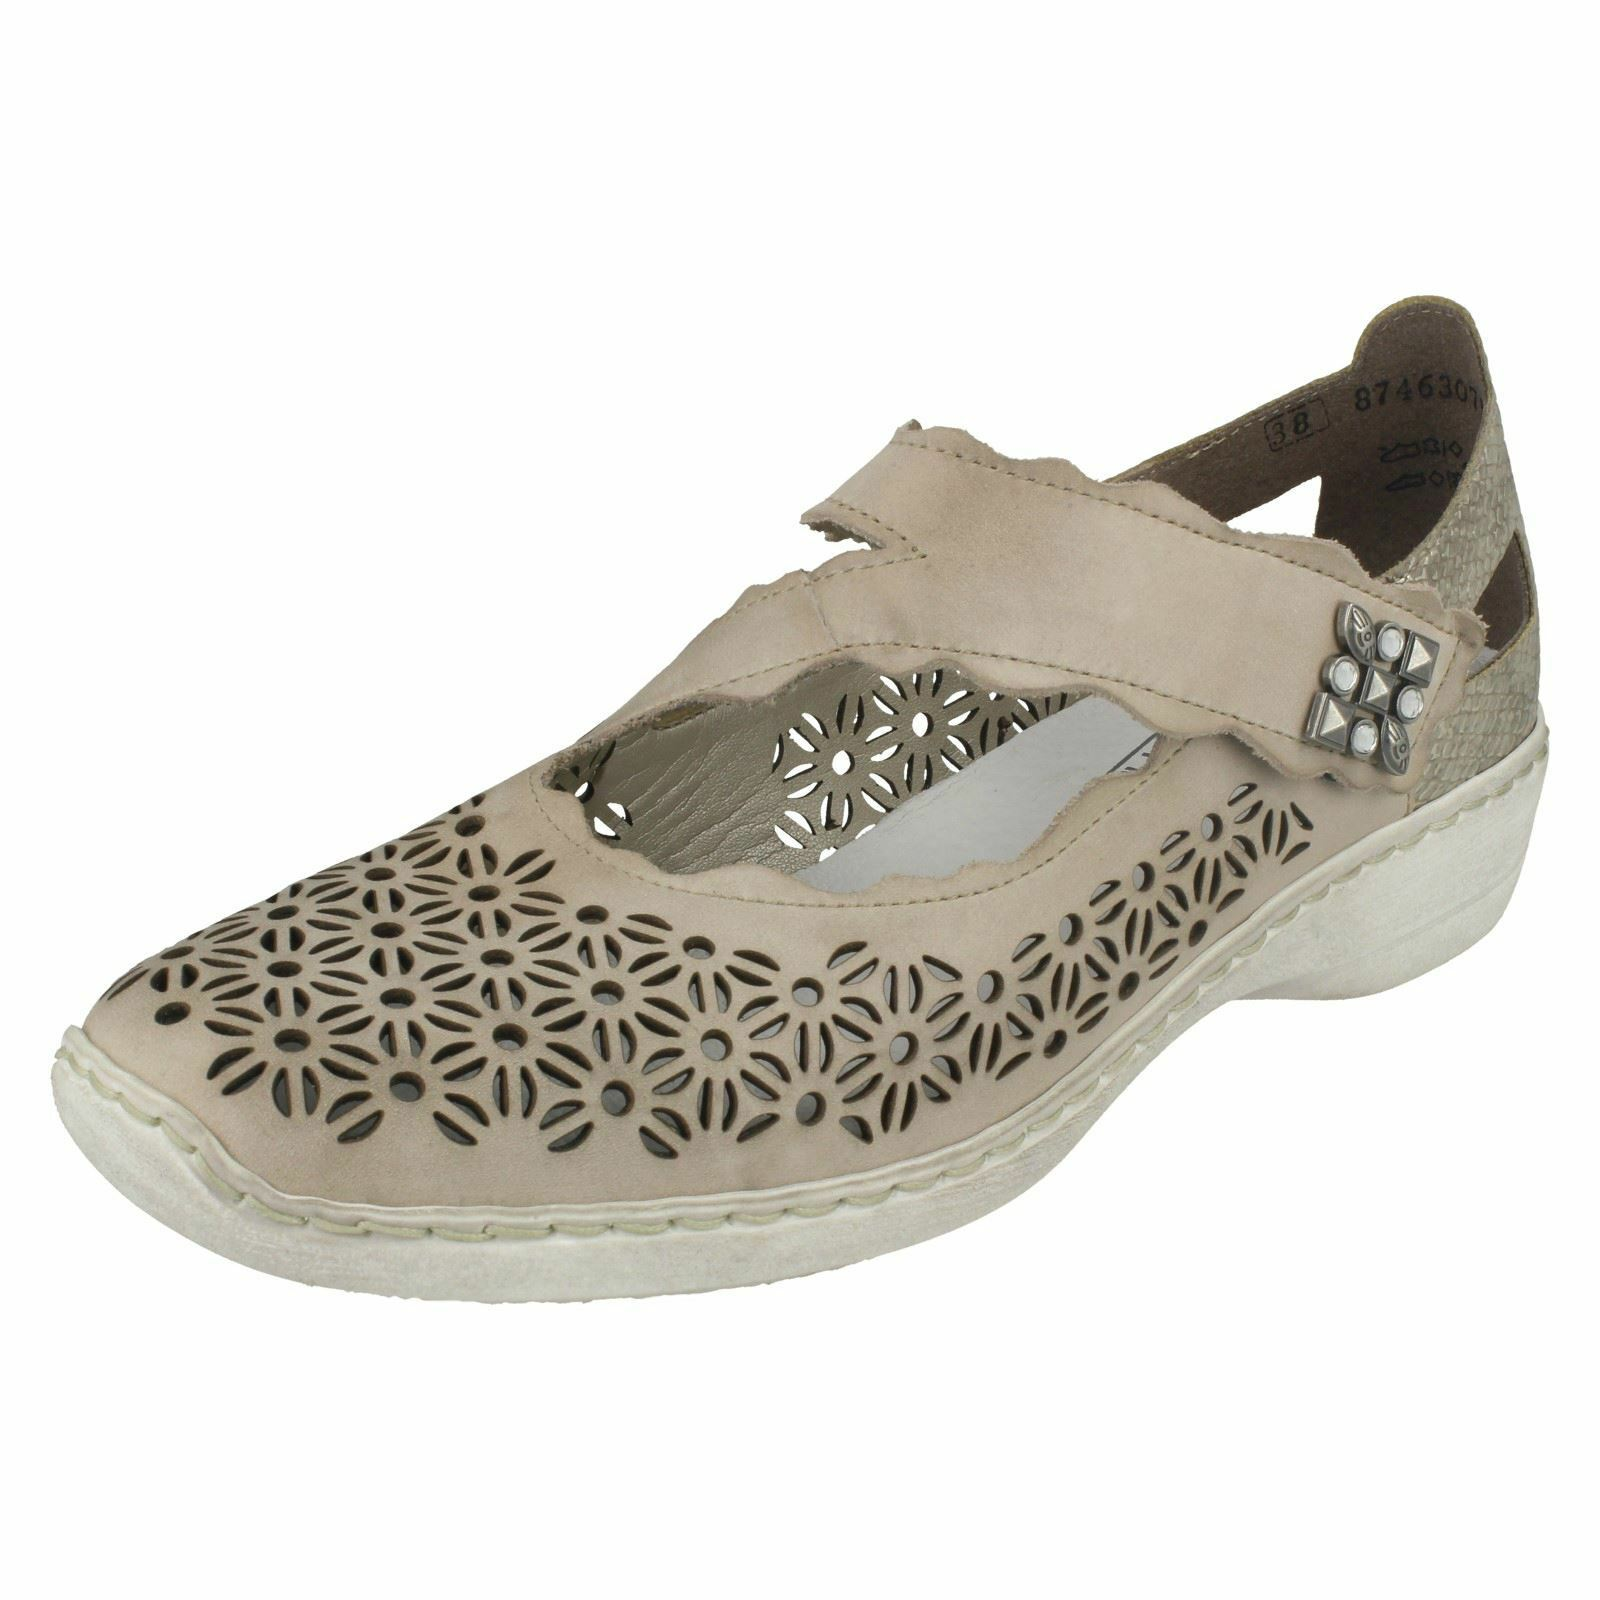 Ladies Rieker 413G4 Grey Leather Casual Mary Jane Bar shoes